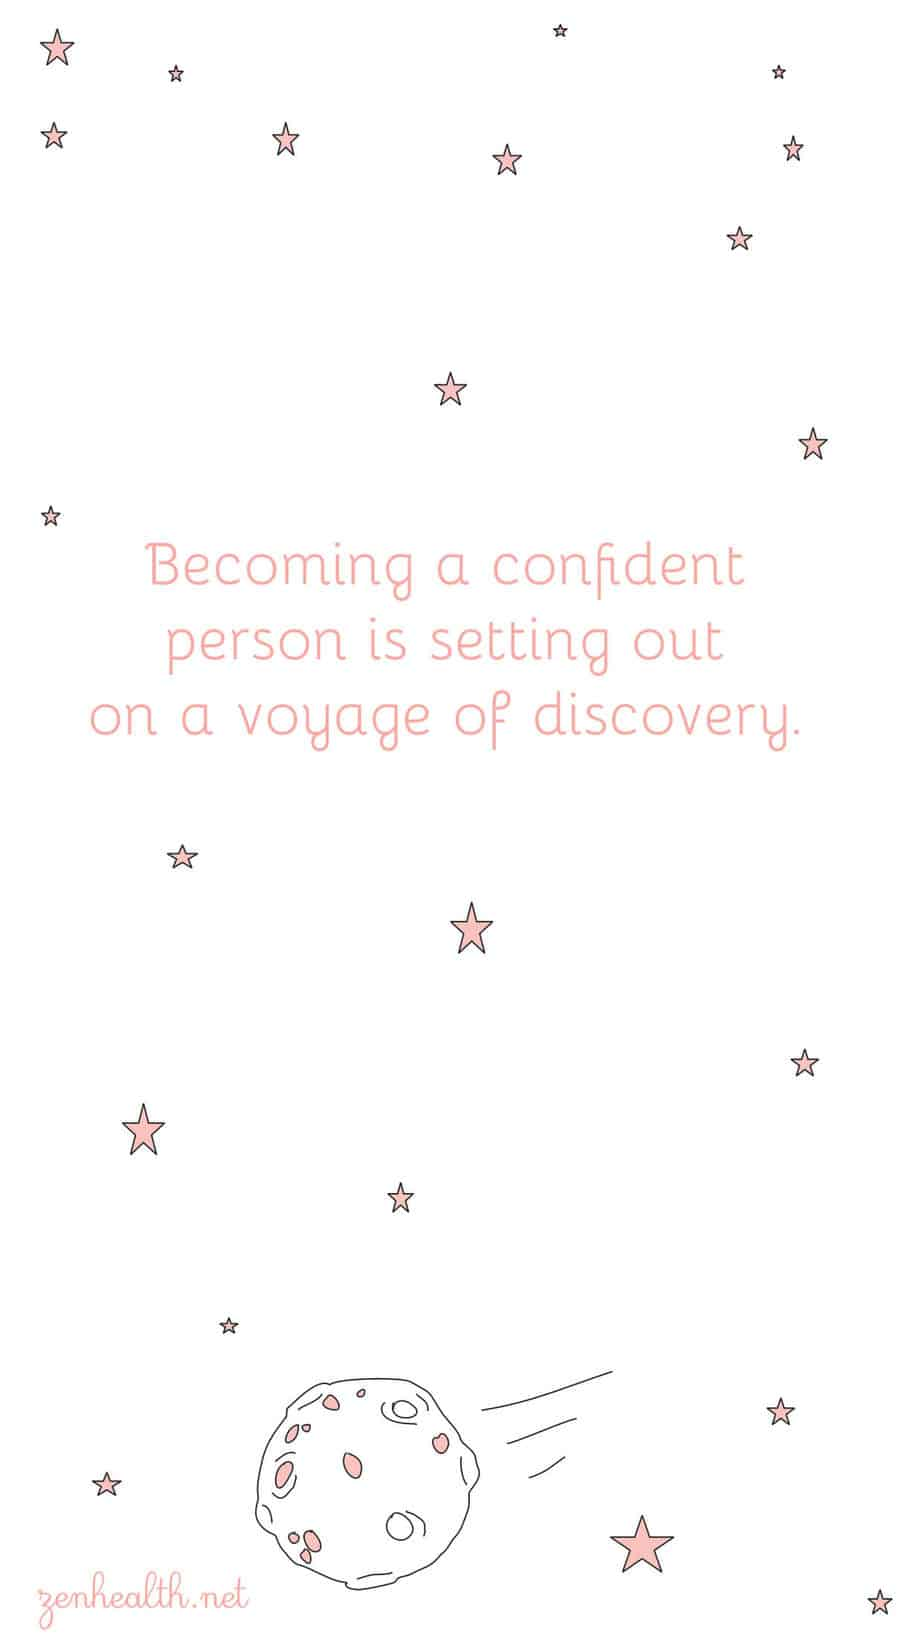 Becoming a confident person is setting out on a voyage of discovery.